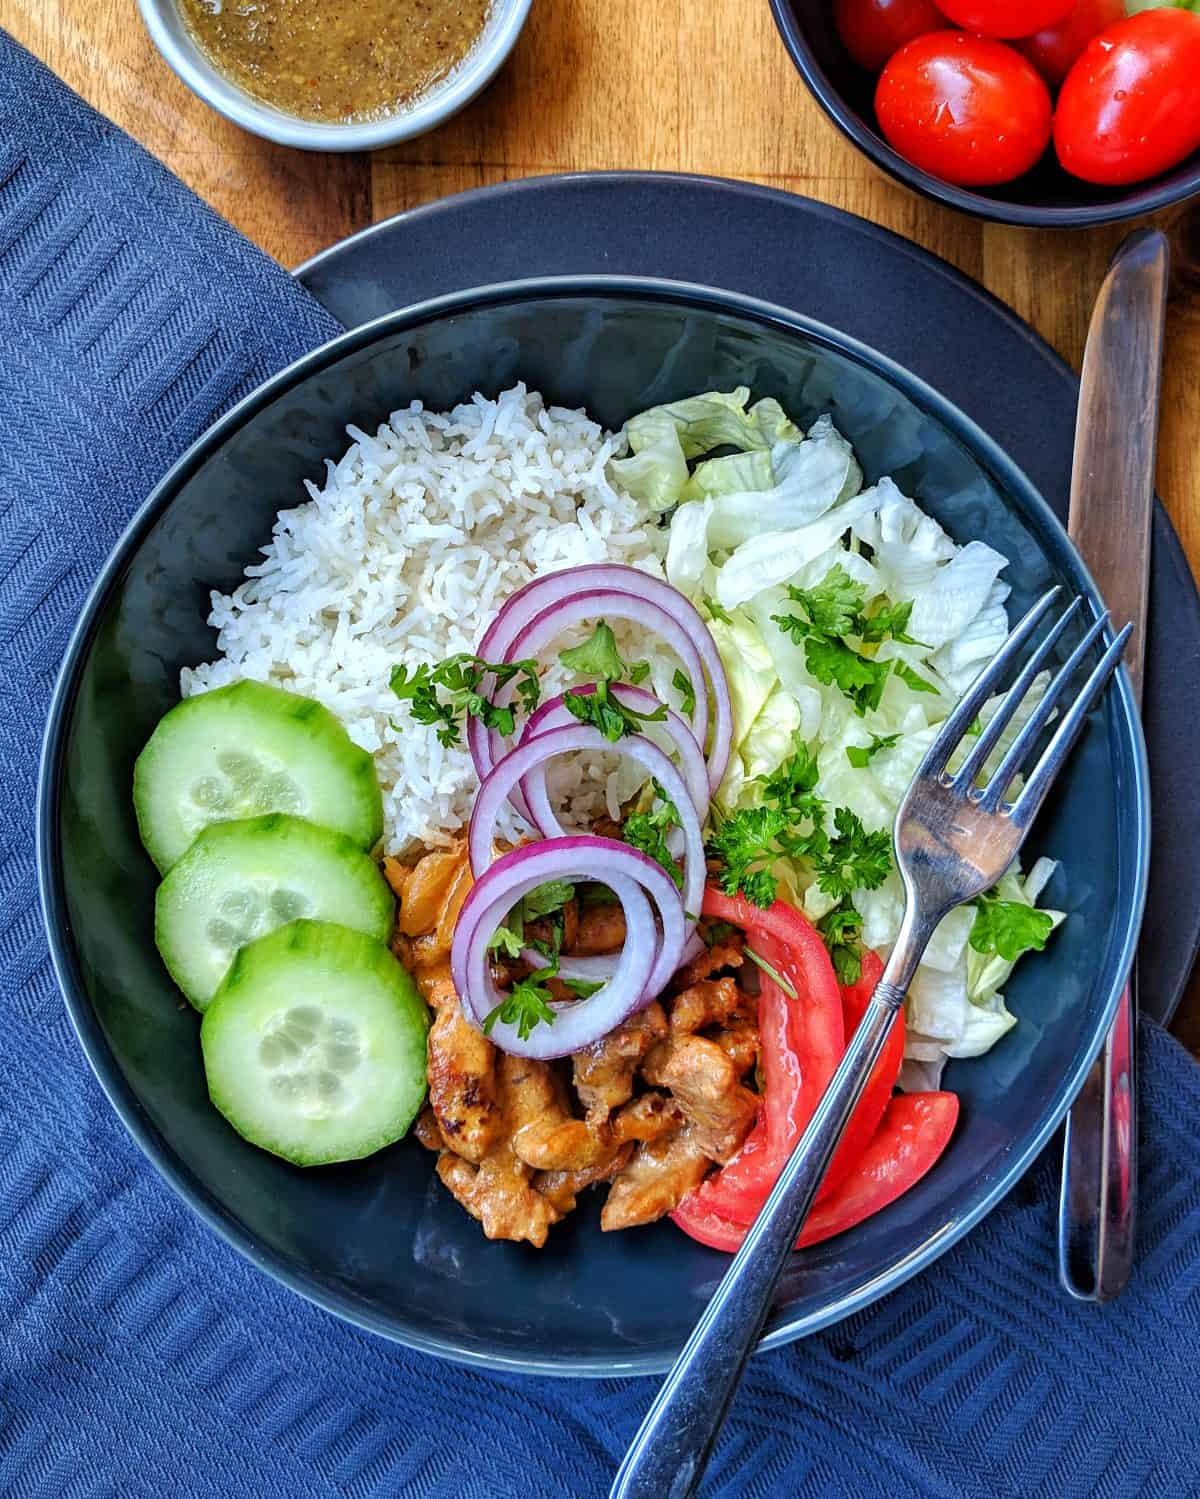 A dark plate with Gyros, rice and salad. In Addition, Decorating.